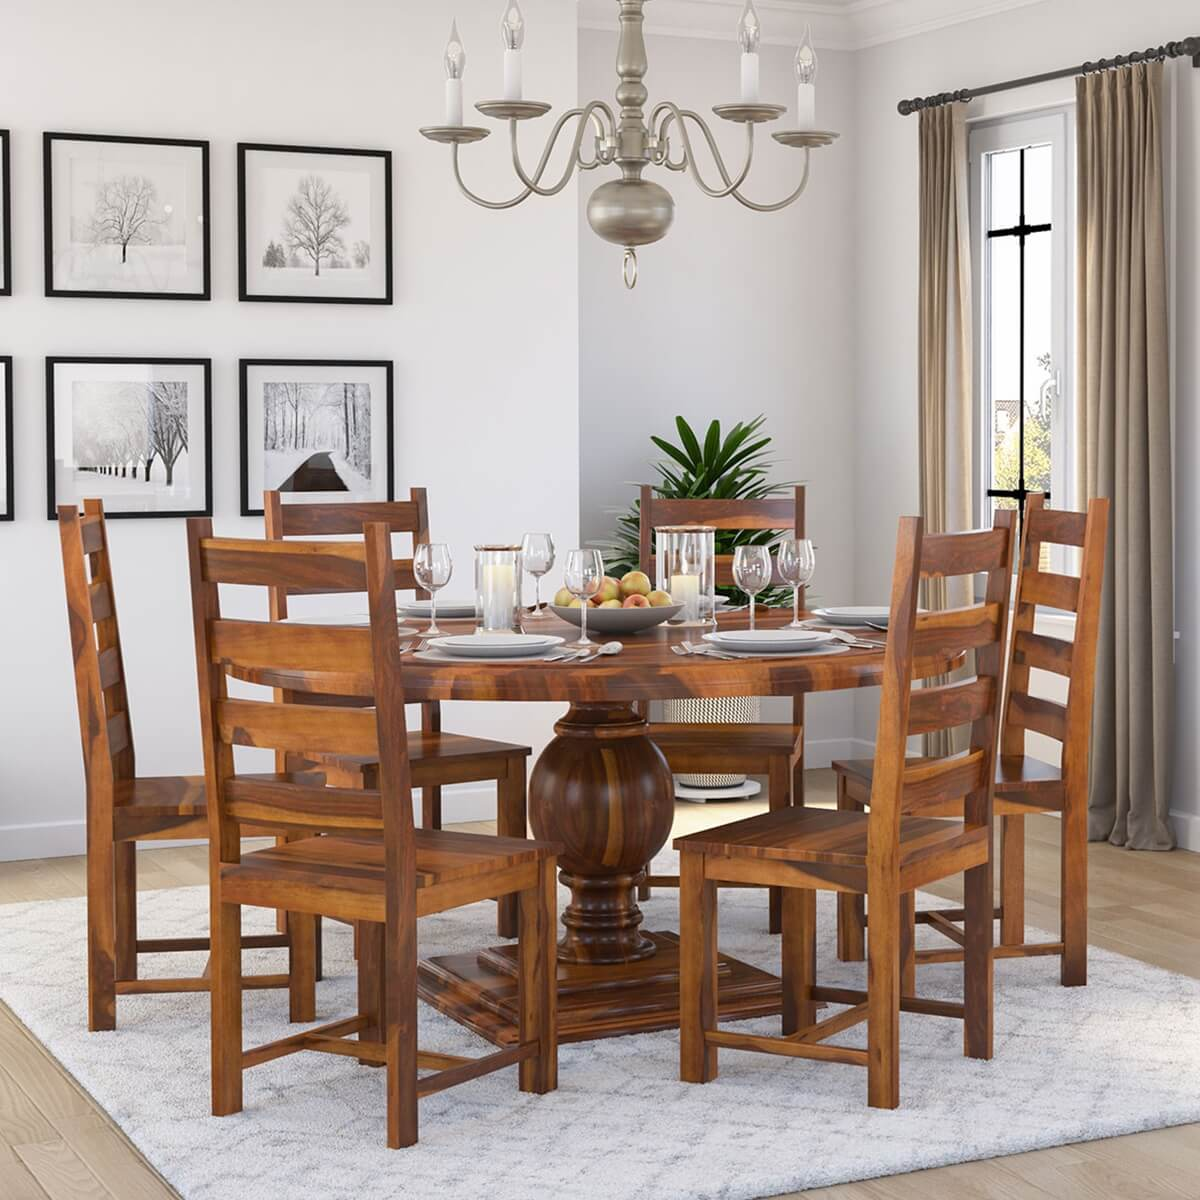 Picture of: Cloverdale Solid Wood Round Dining Table With 6 Chairs Set